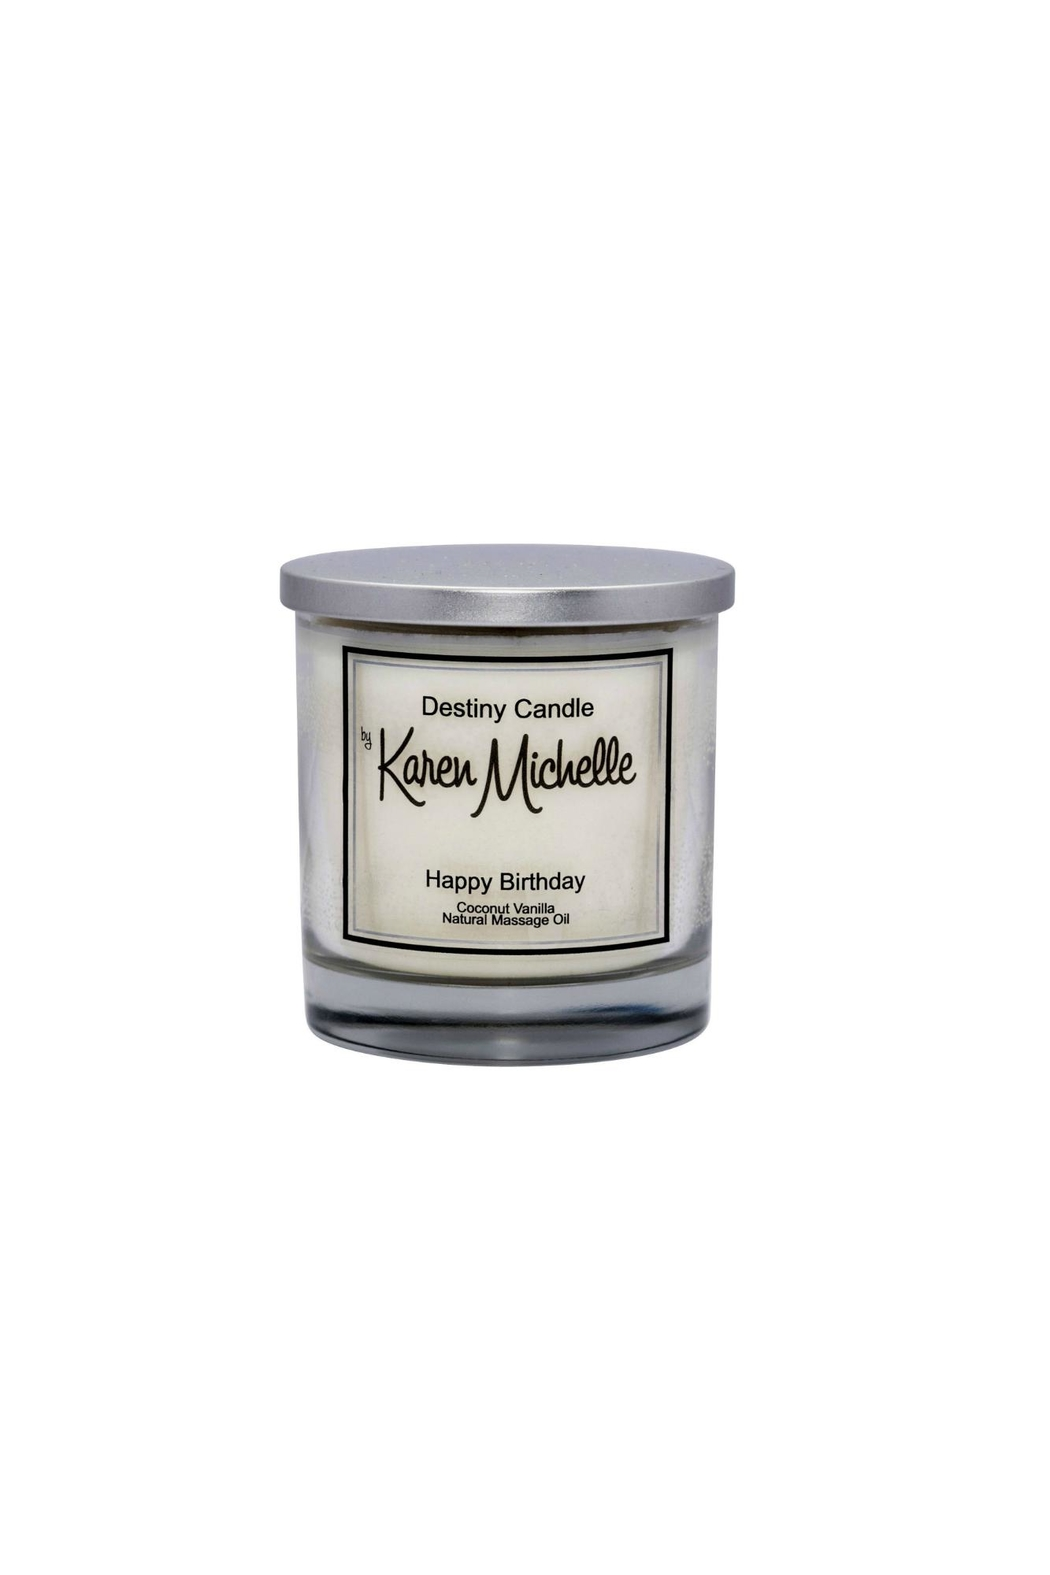 Destiny Candle by Karen Michelle Coconut Vanilla Massage Oil Candle - Main Image